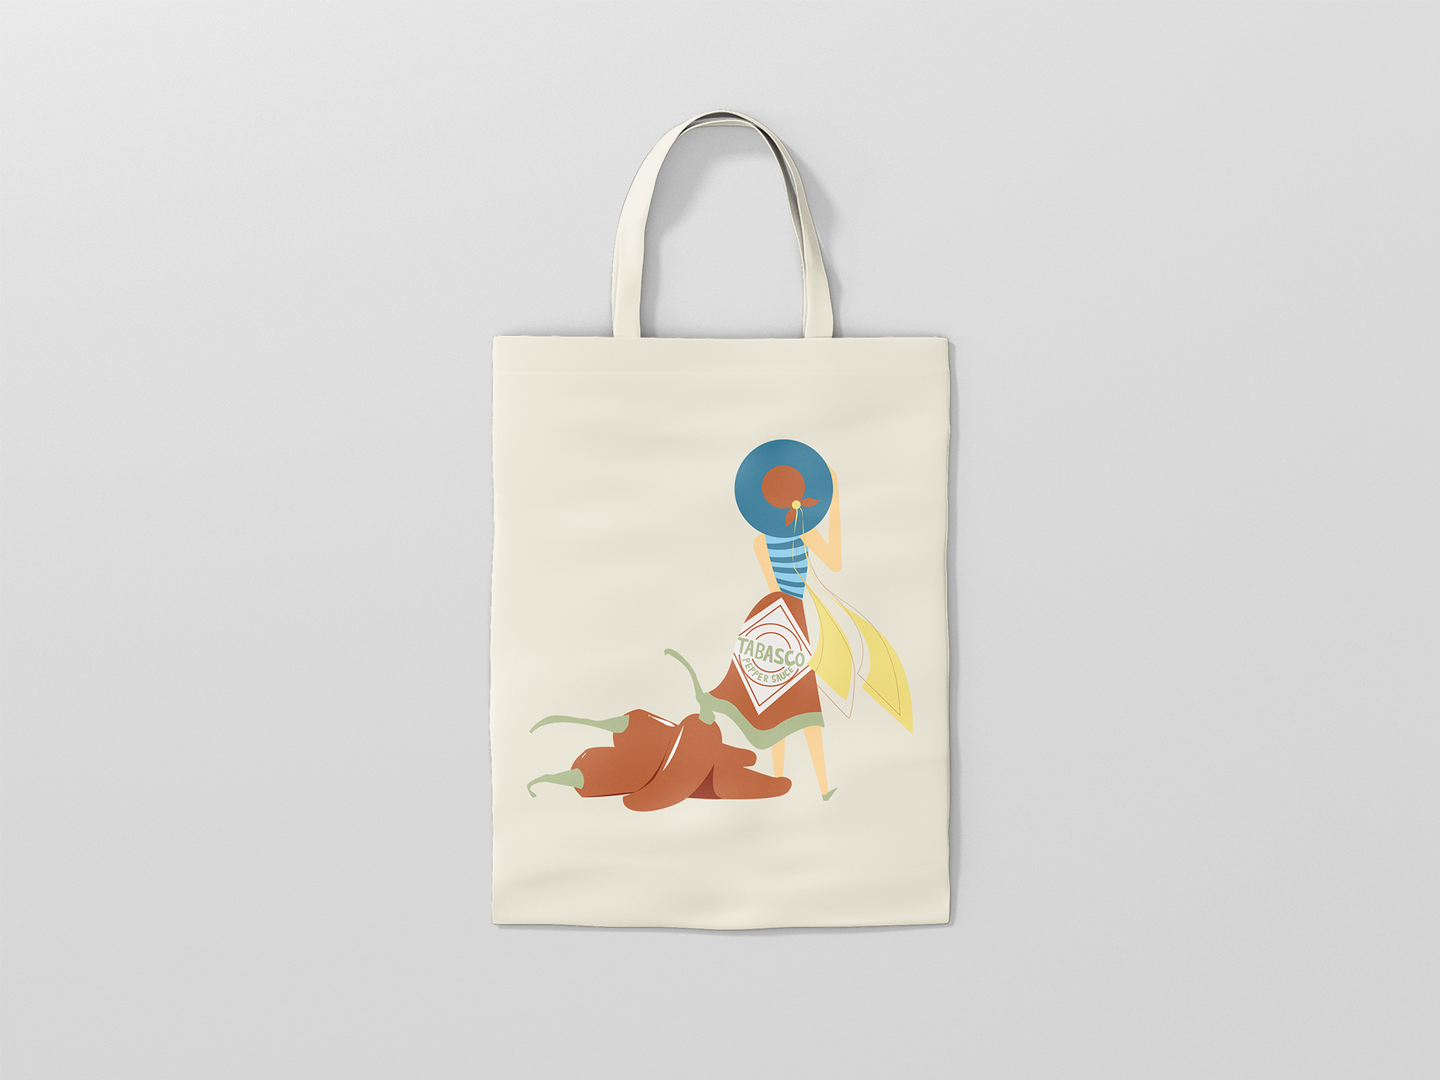 Hot Sauce Tote Bag